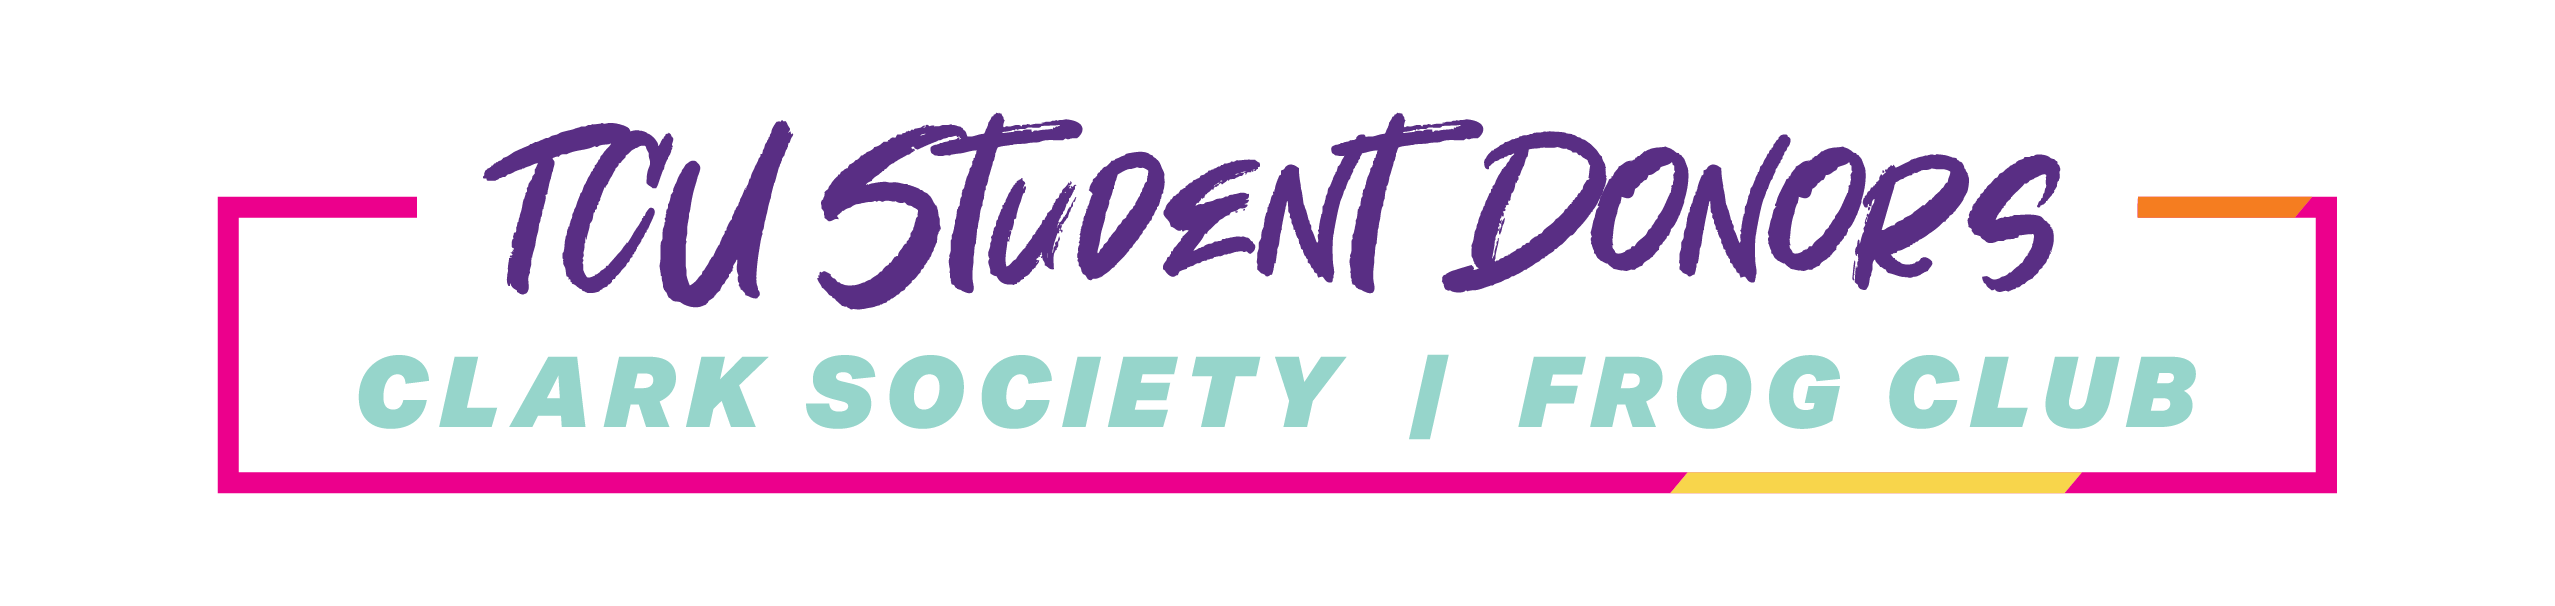 TCU Student Donors | Clark Society and Frog Club